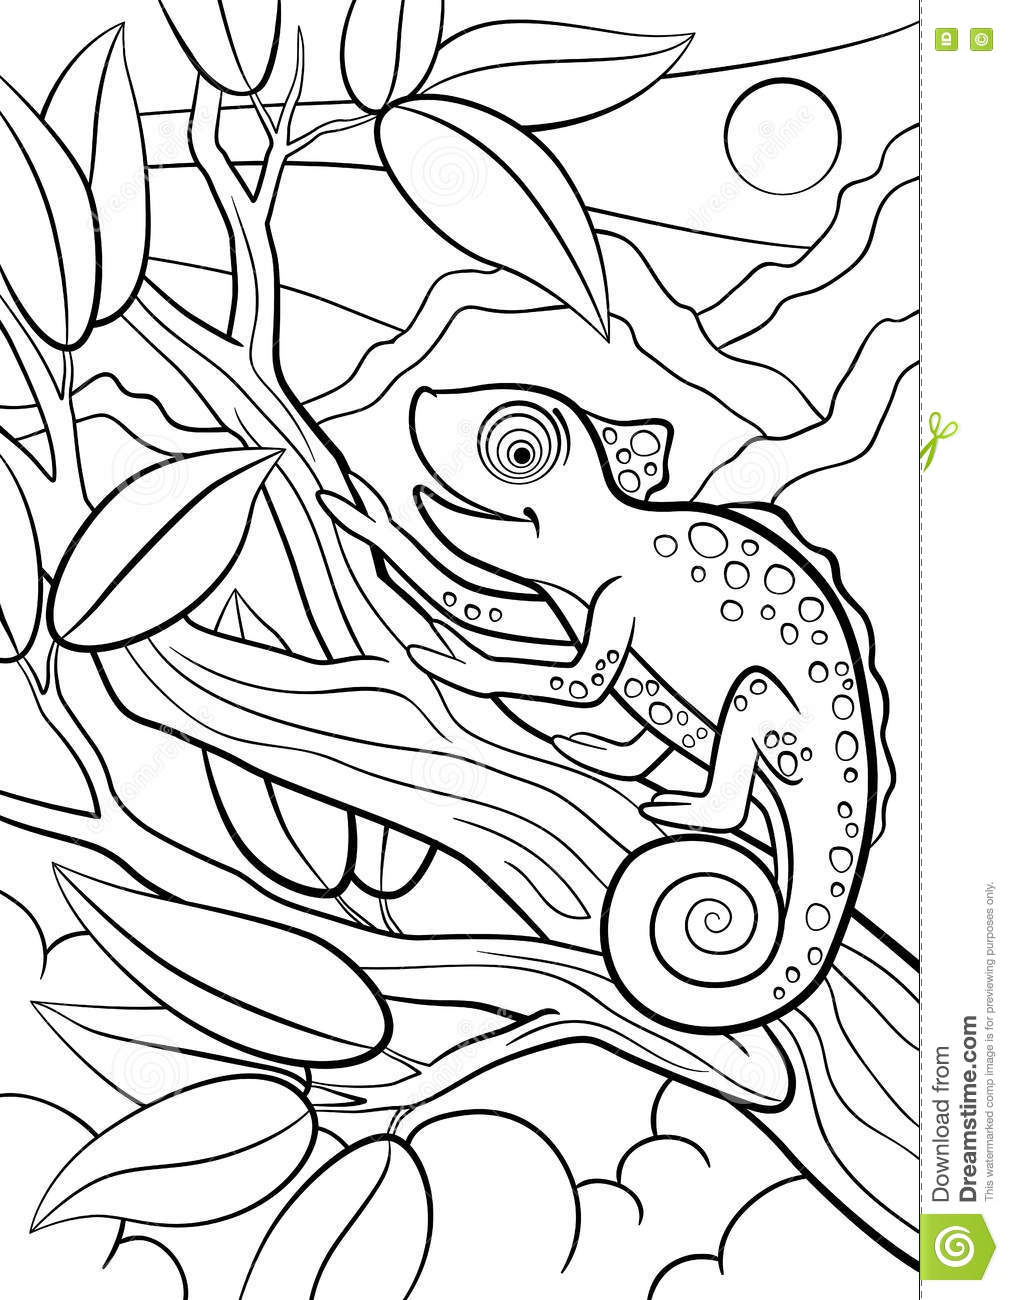 insect coloring pages camo - photo#9